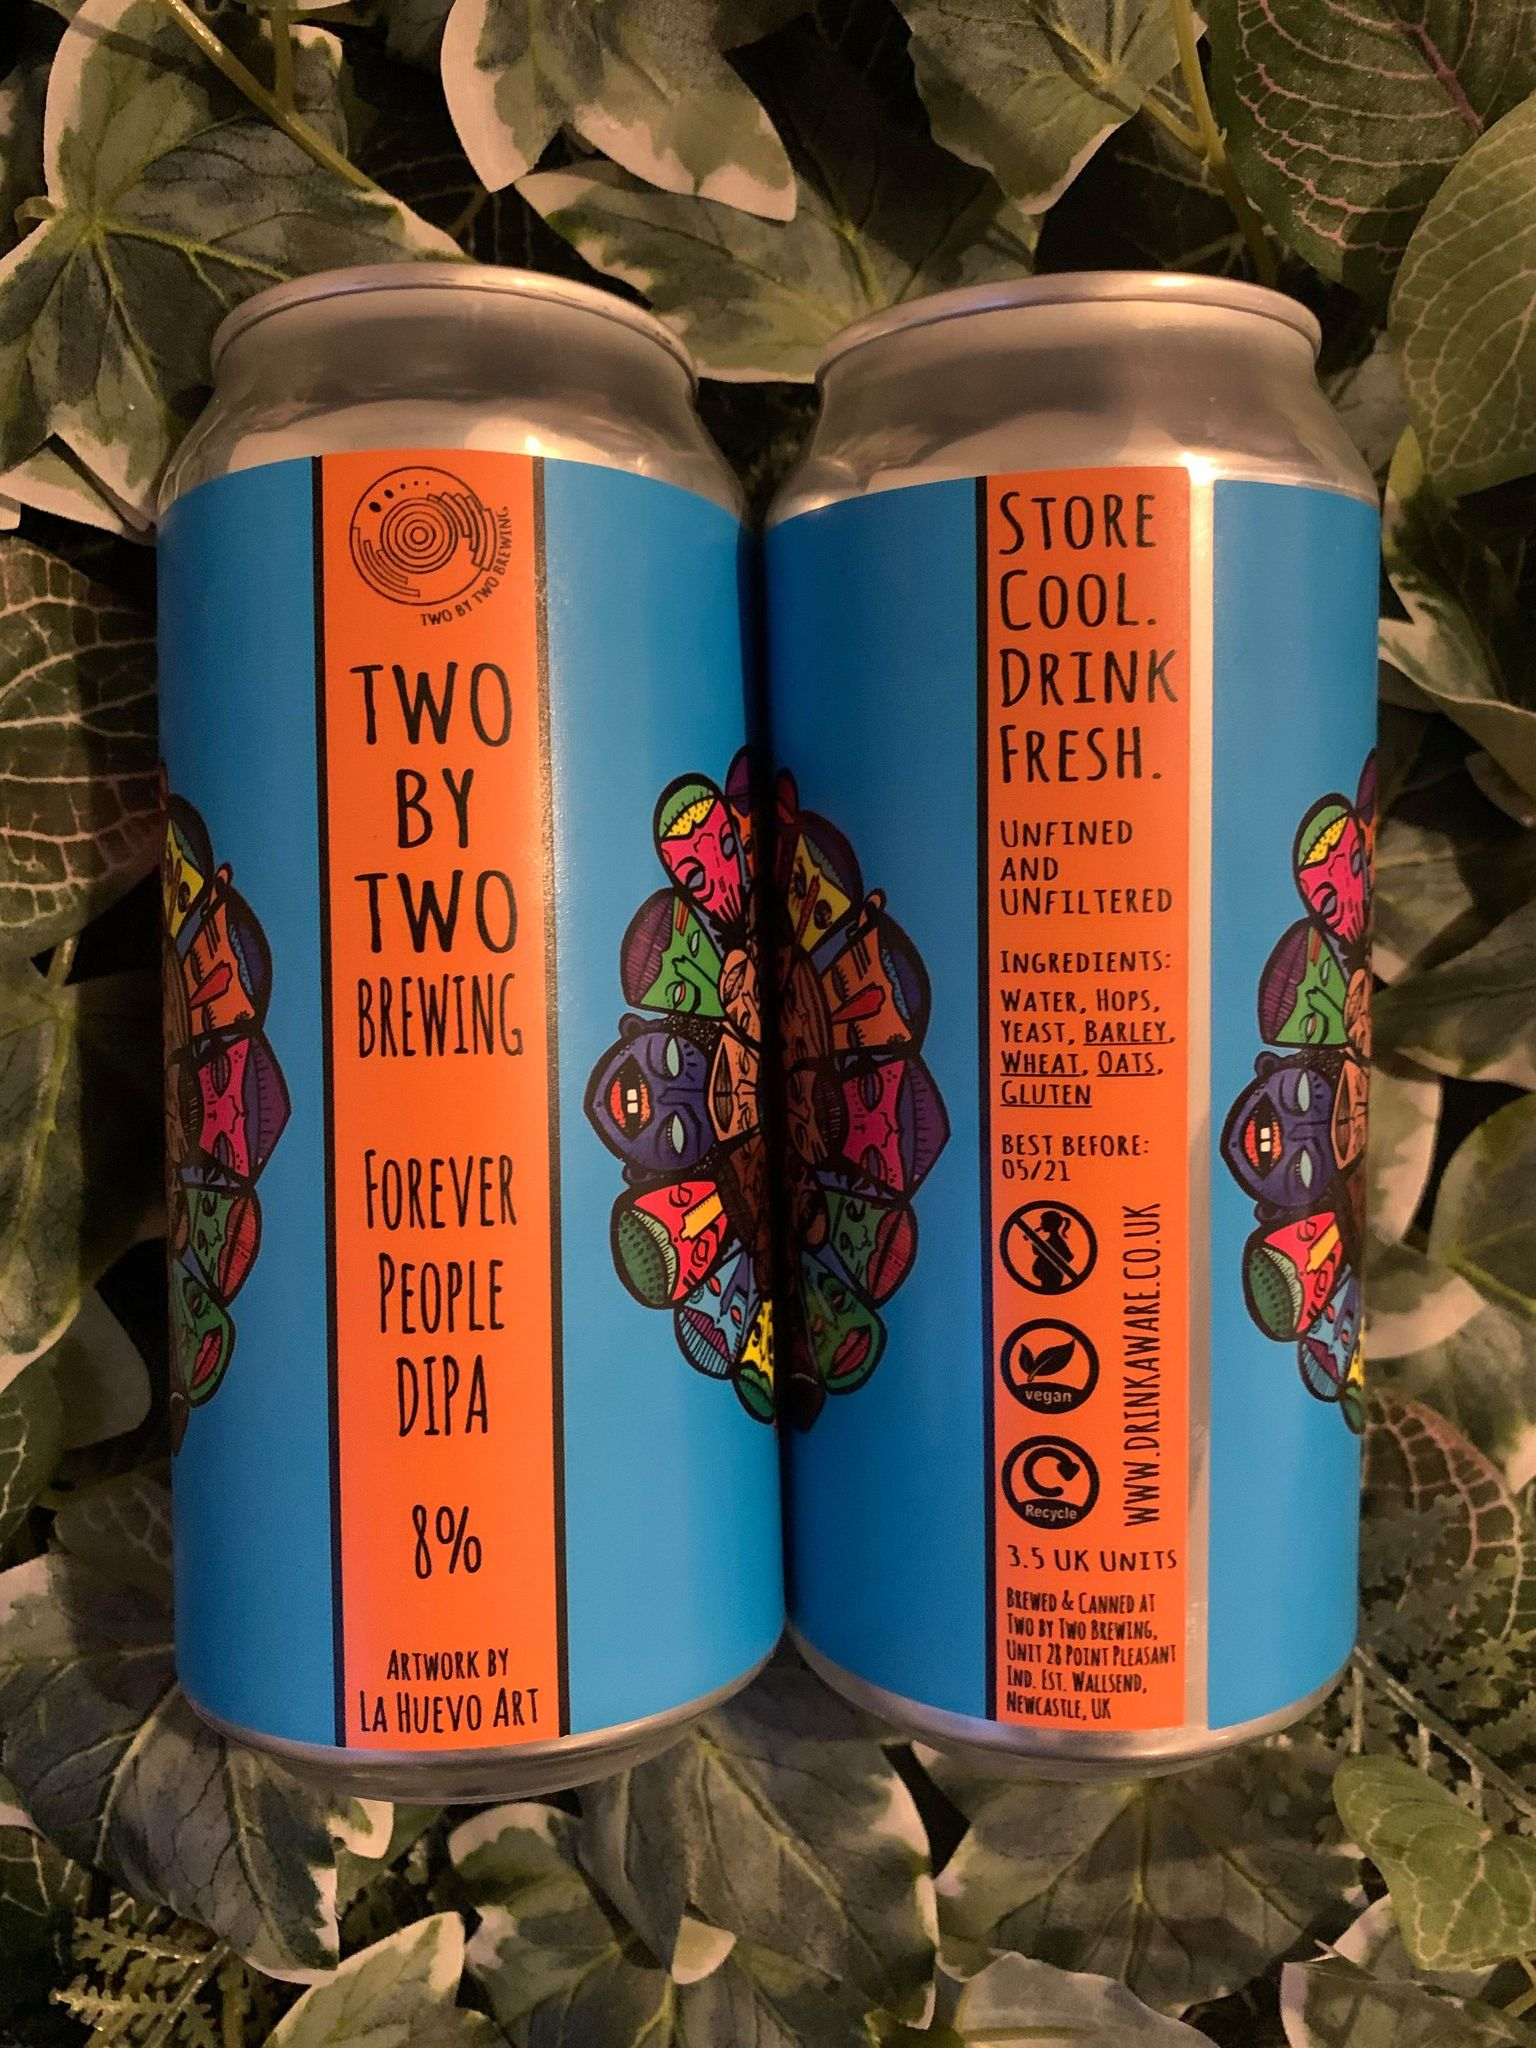 Two By Two - Forever People DIPA 8%